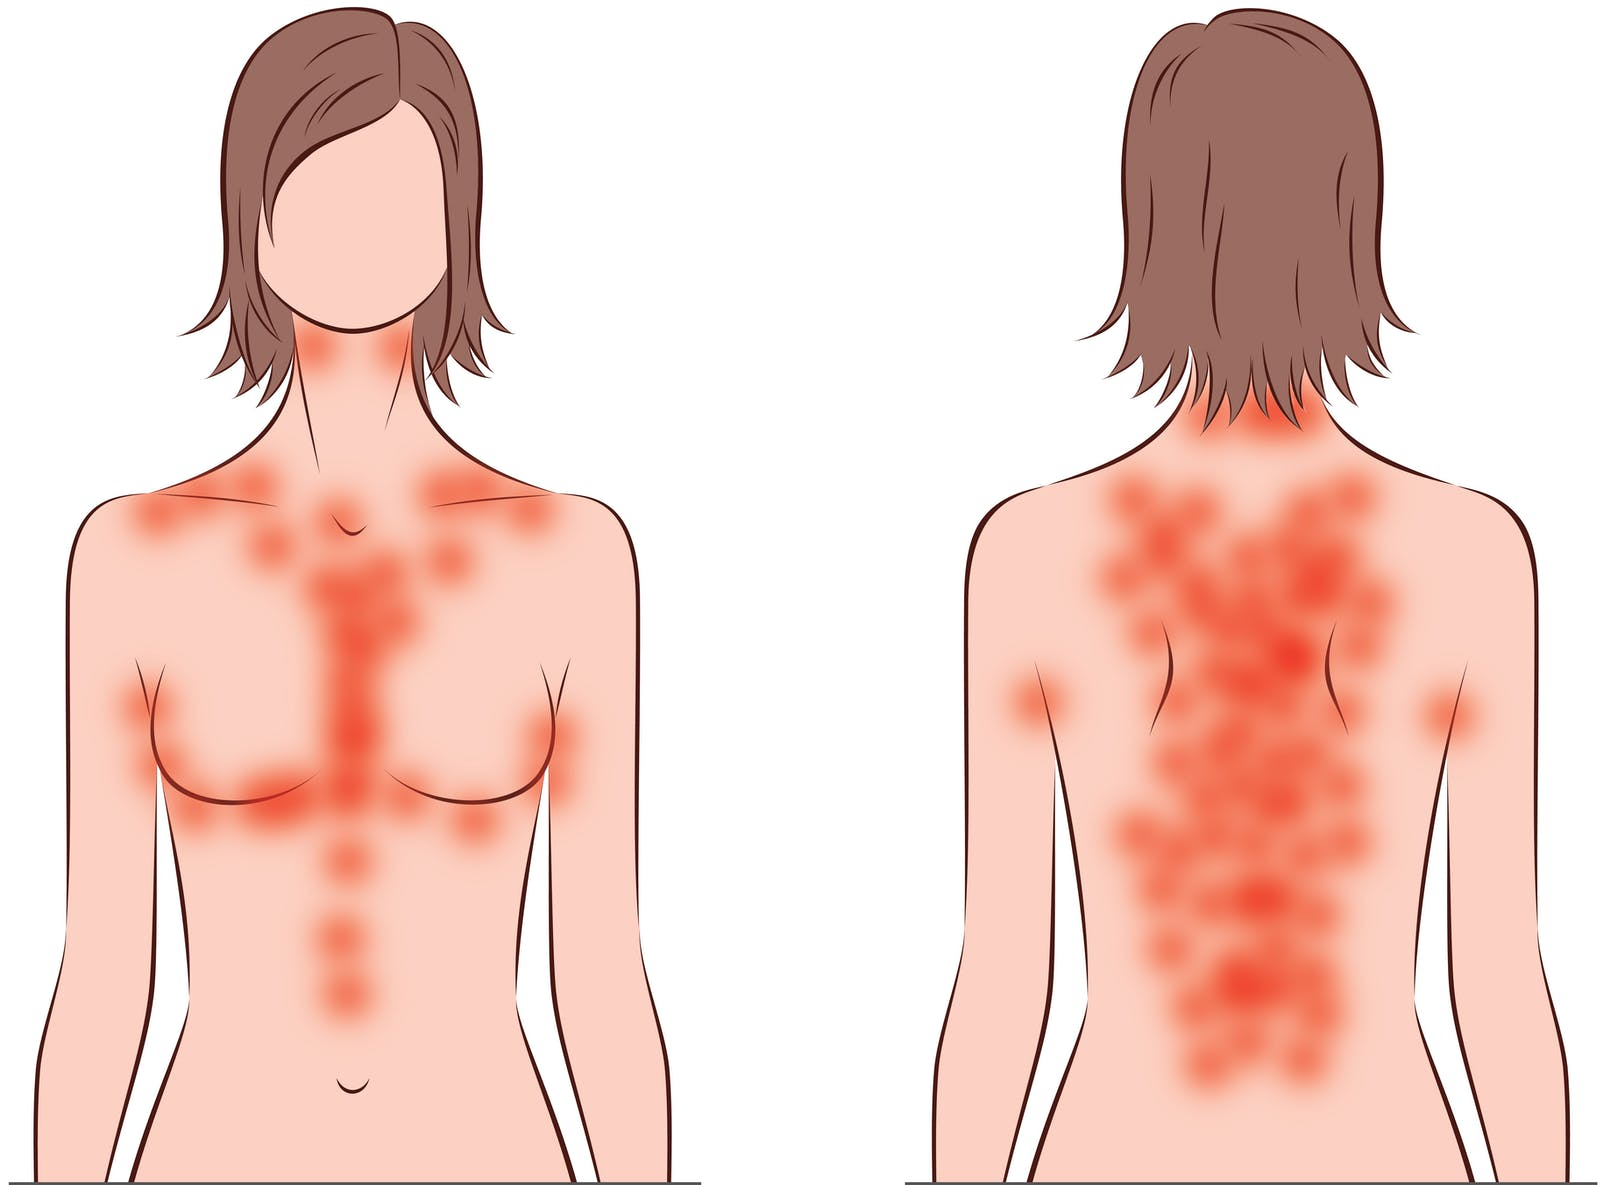 Keto Rash – Why You May Itch on Low Carb, and What to Do